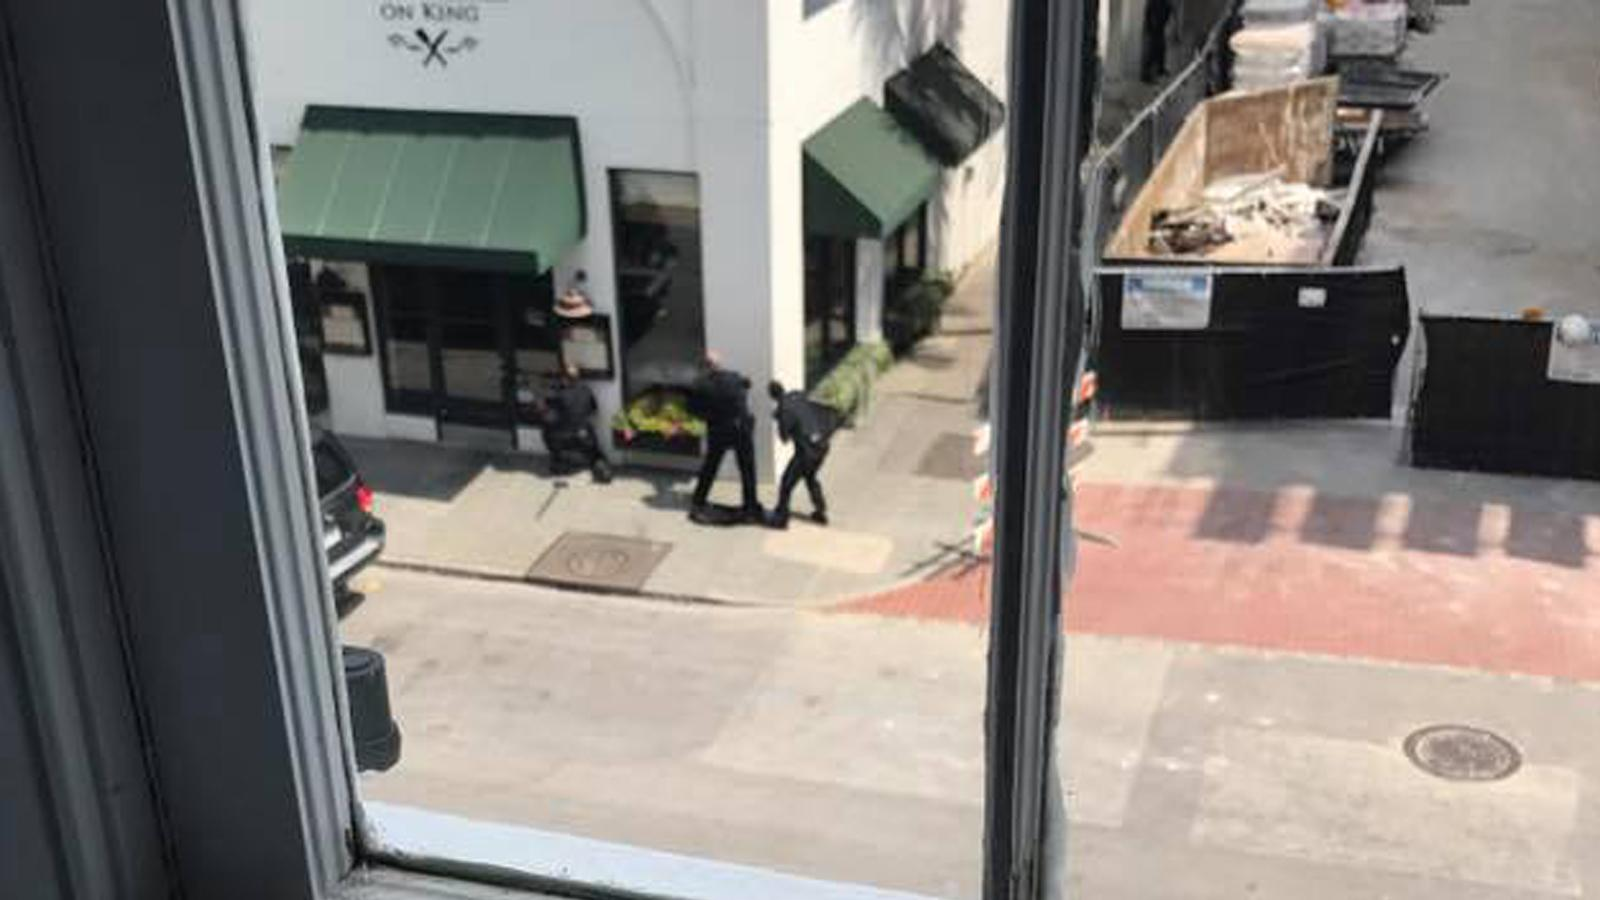 Police officers with weapons drawn outside Virginia's on King restaurant. (Provided/Robbie Kimbrough)